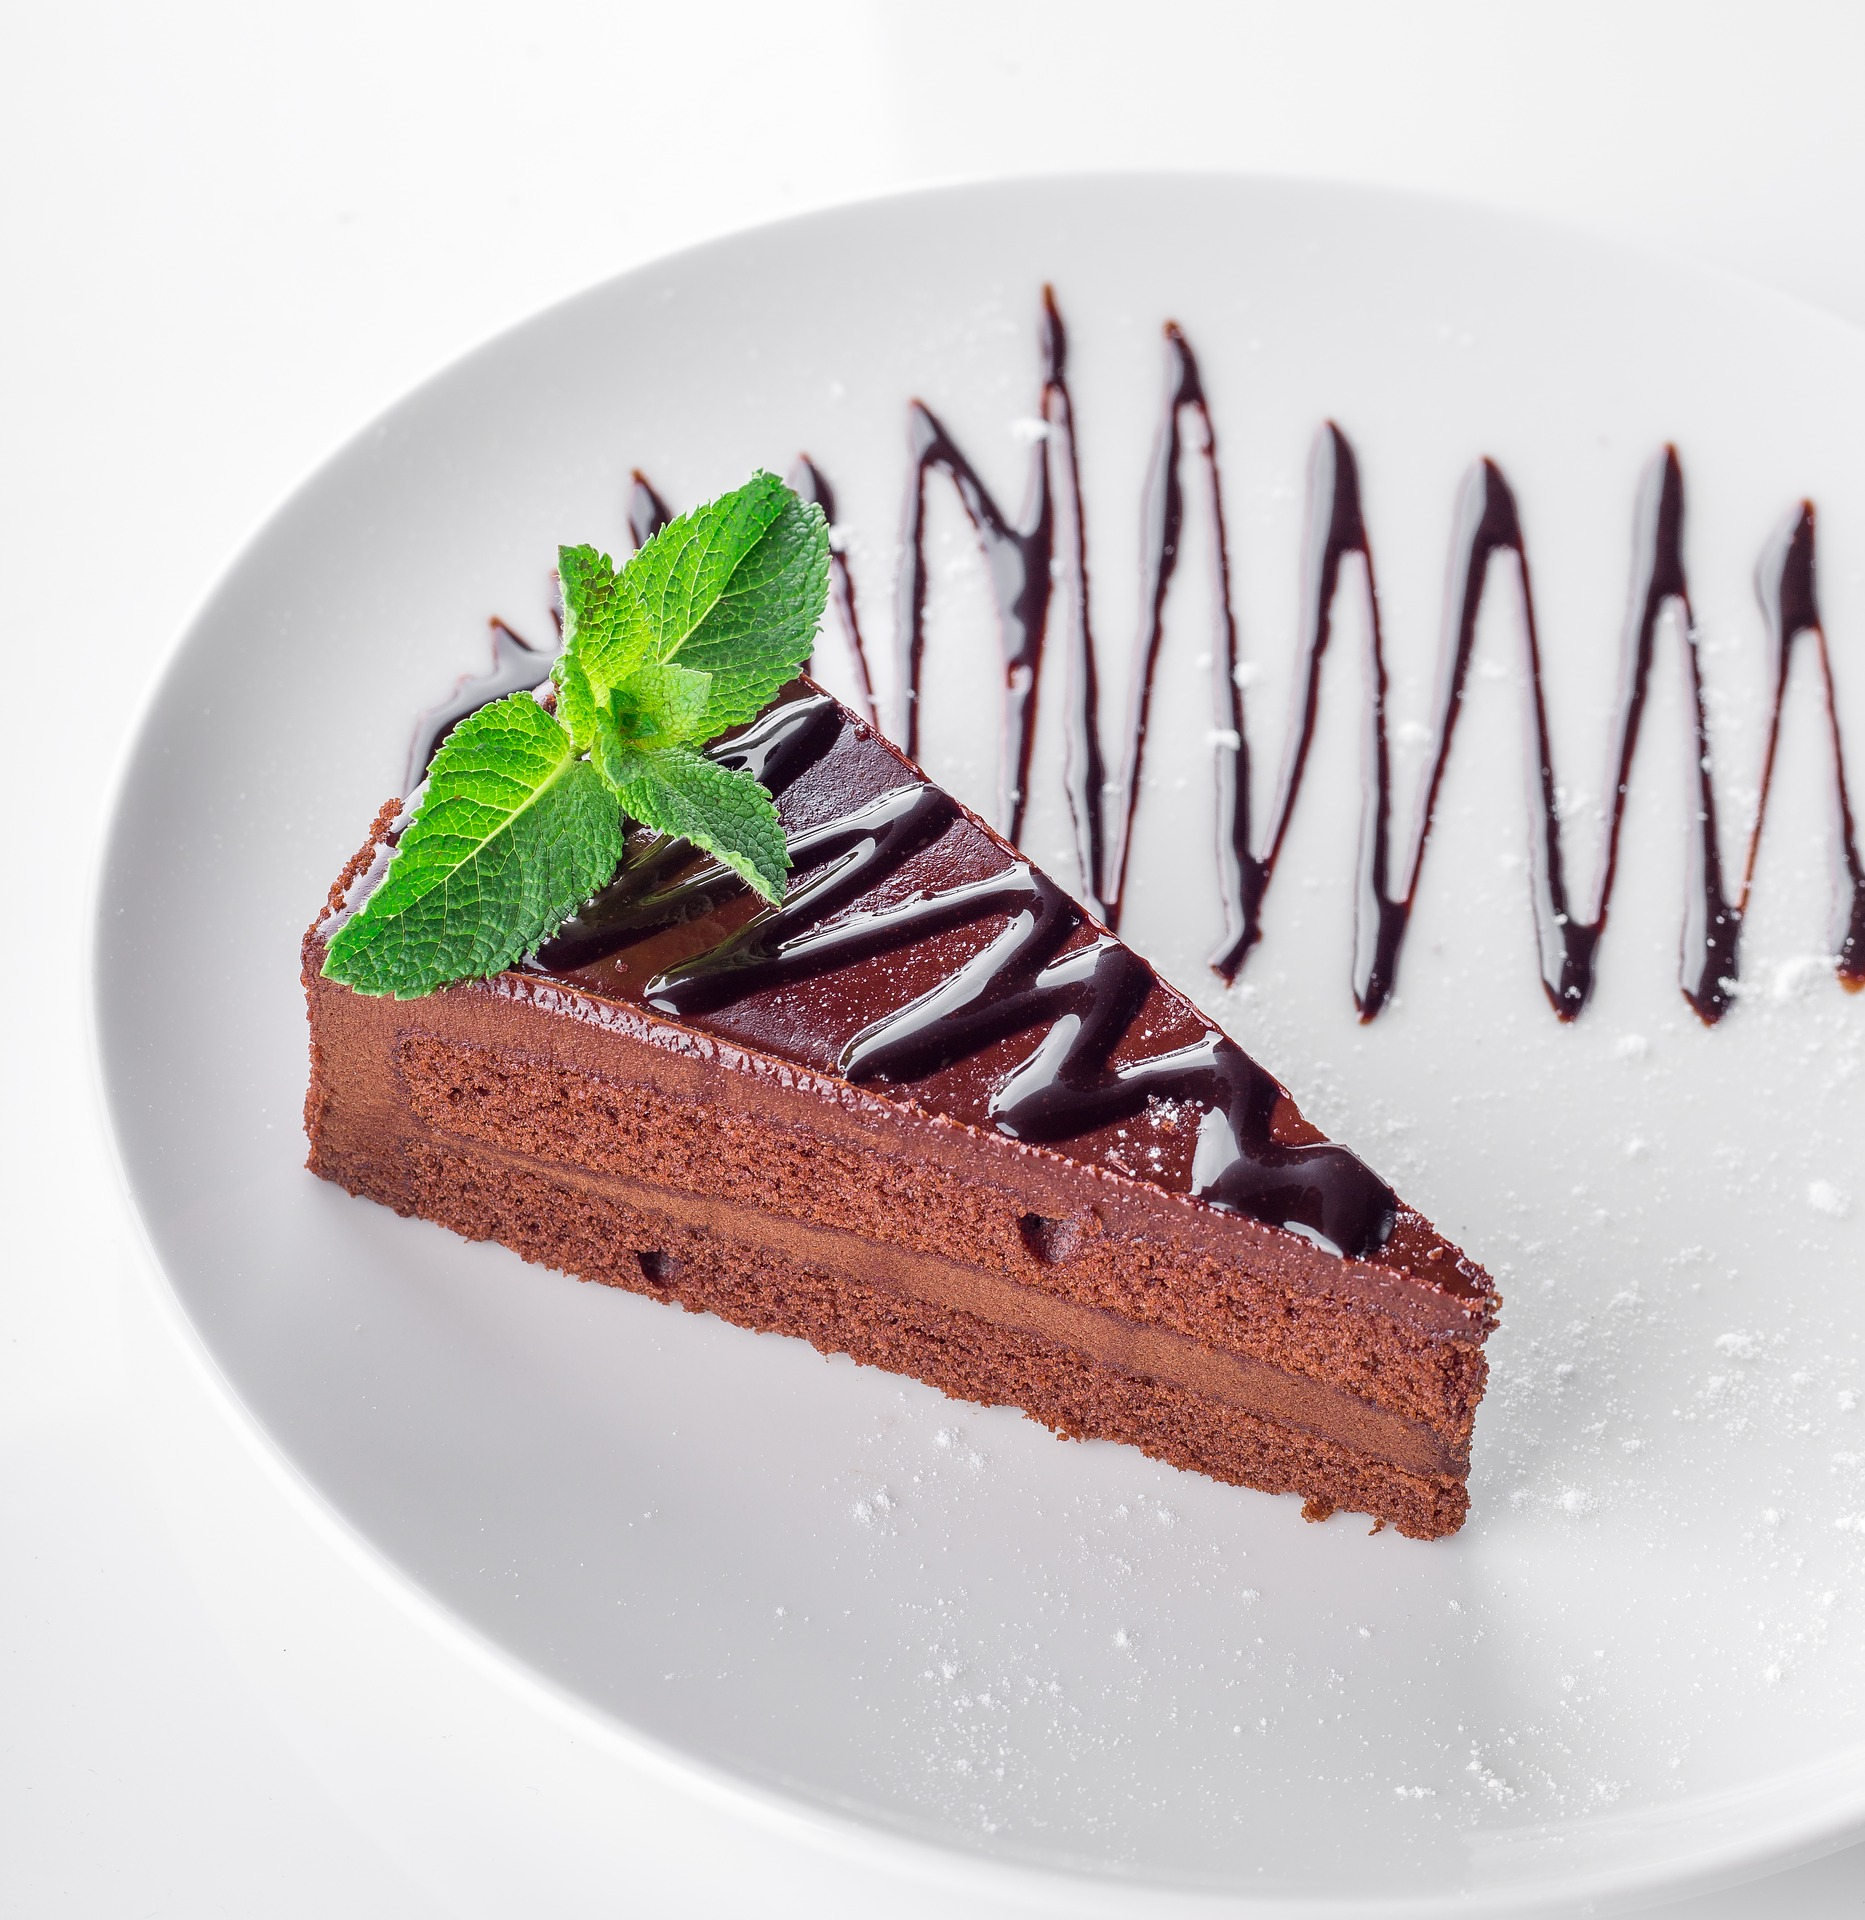 Chocolate Cake, Bake, Baked, Cake, Choc, HQ Photo